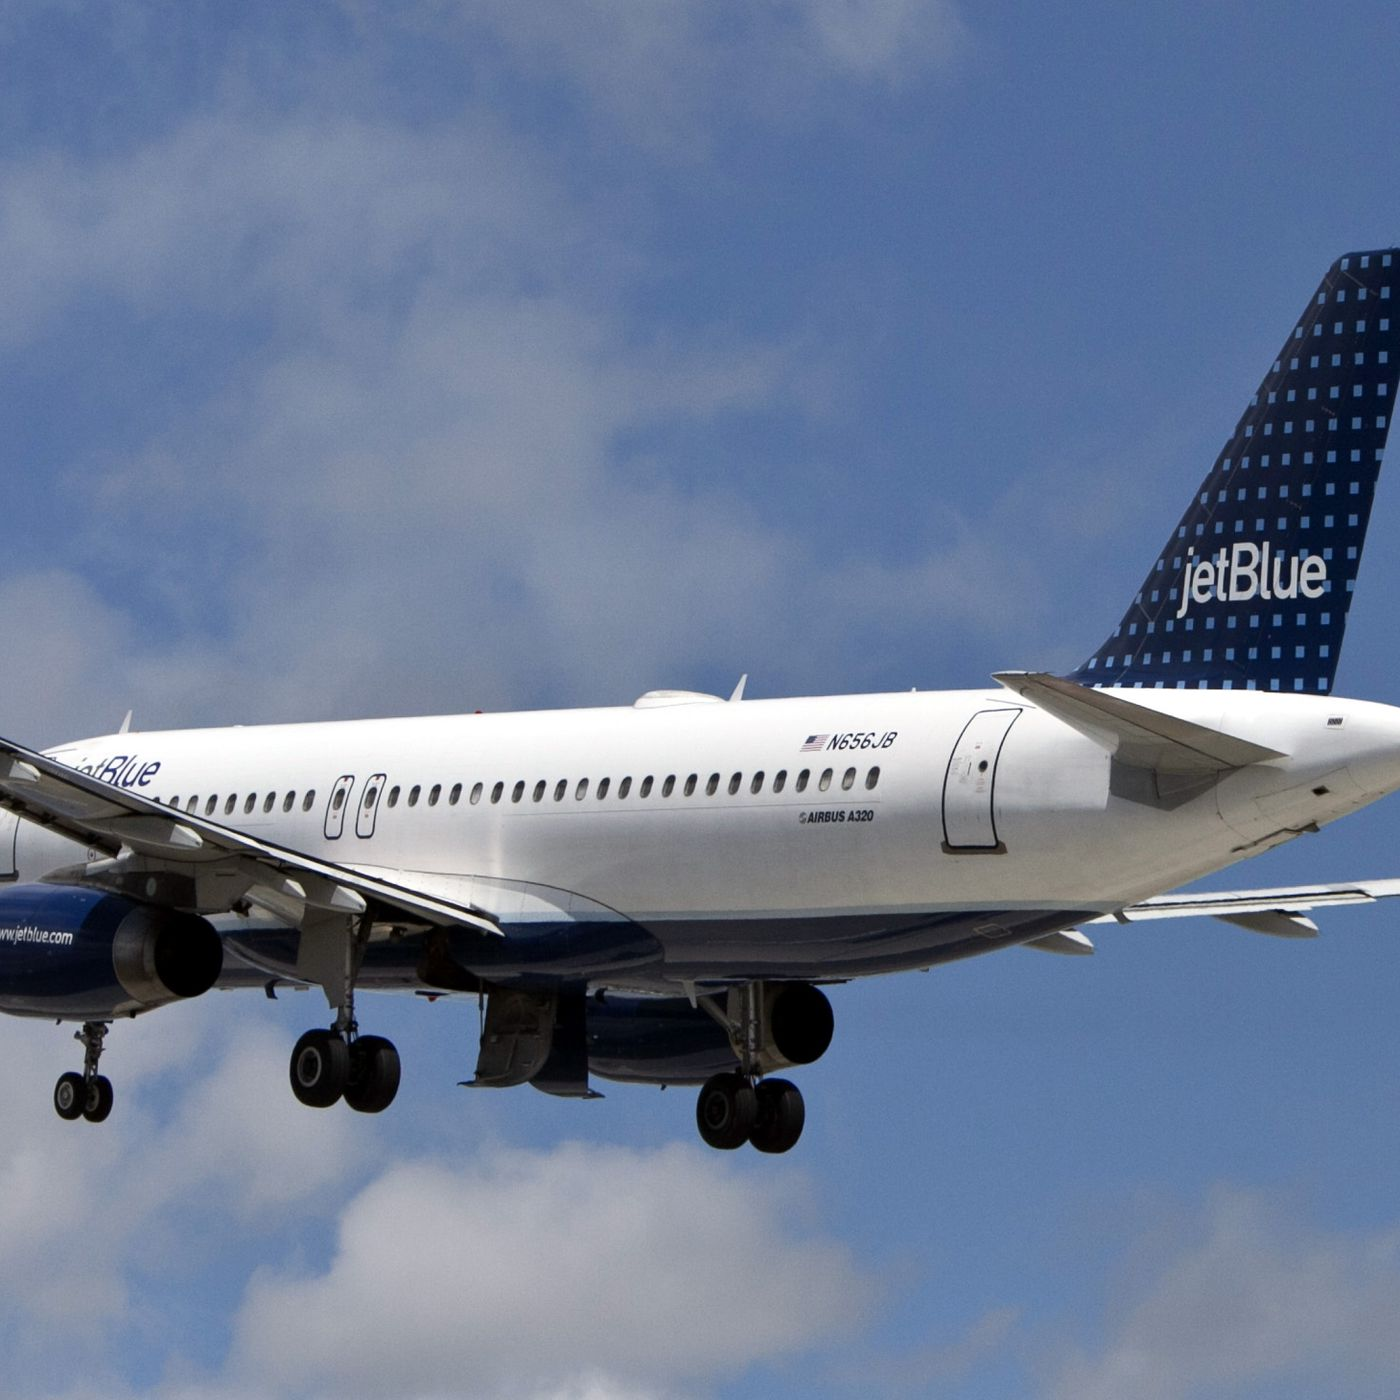 Jetblue Is Raising Its Checked Baggage Fees To 30 The Verge